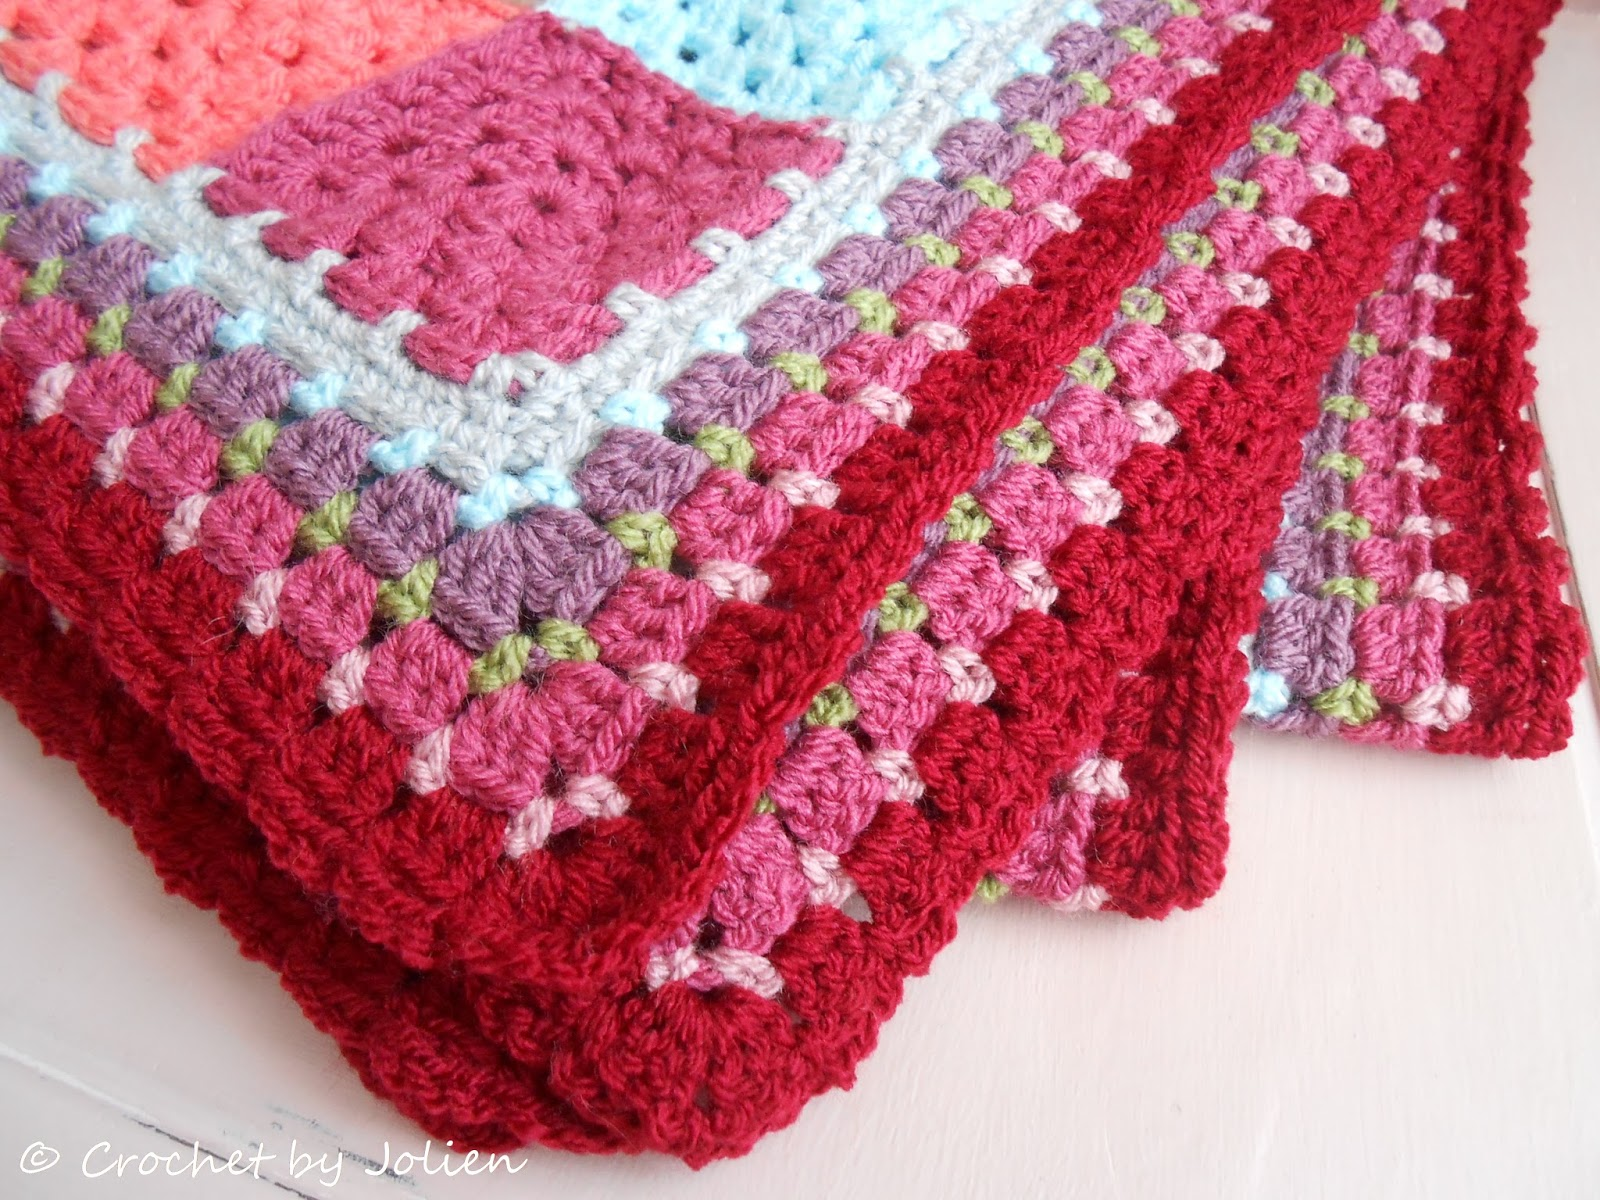 Crochet By Jolien Granny Square Deken Is Klaar